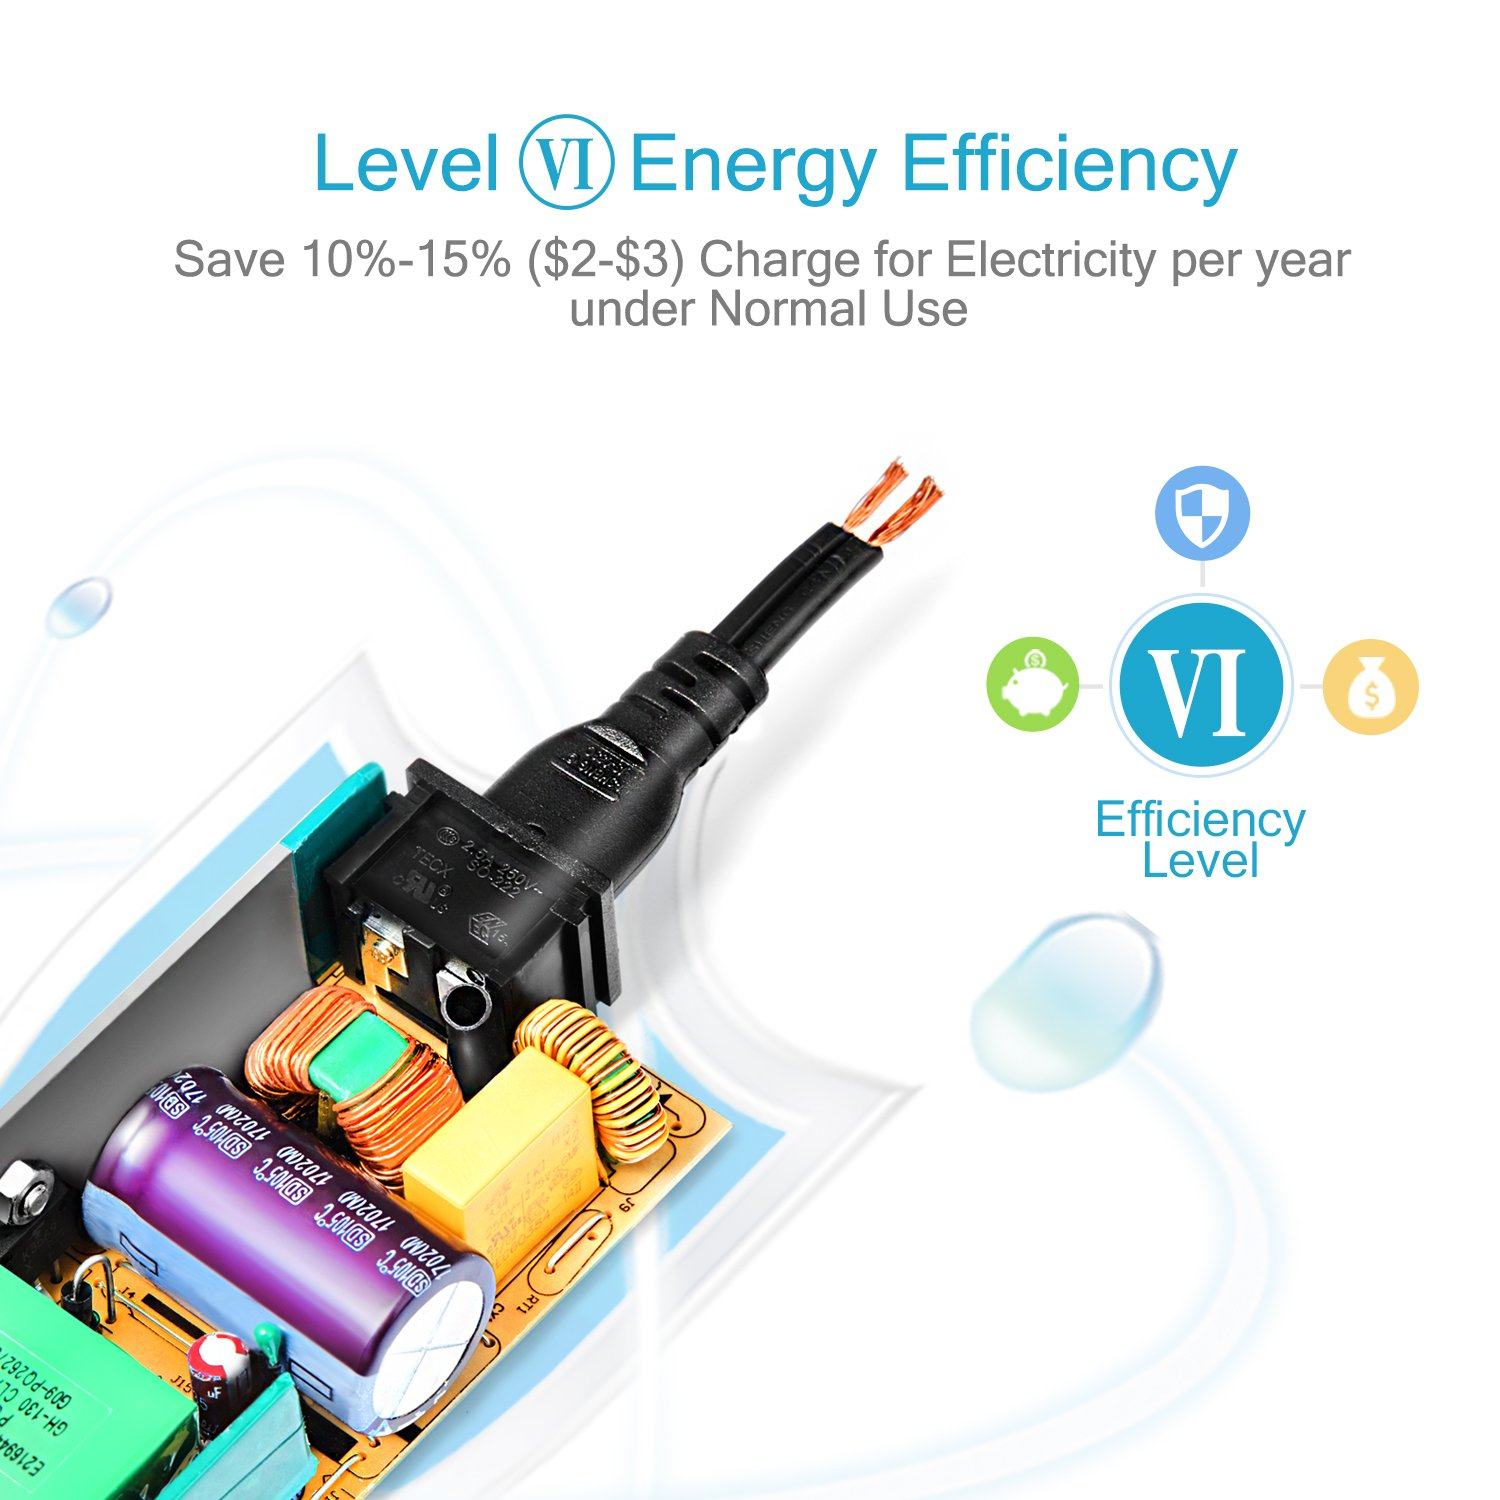 Ul Listed Chanzon 12v 5a 60w Ac Dc Power Supply Adapter Input 110v With High Led Driver For Car Electronics Forum Circuits 220v Output 12 Volt 5 Amp 60 Watt Converter Lighting Transformer